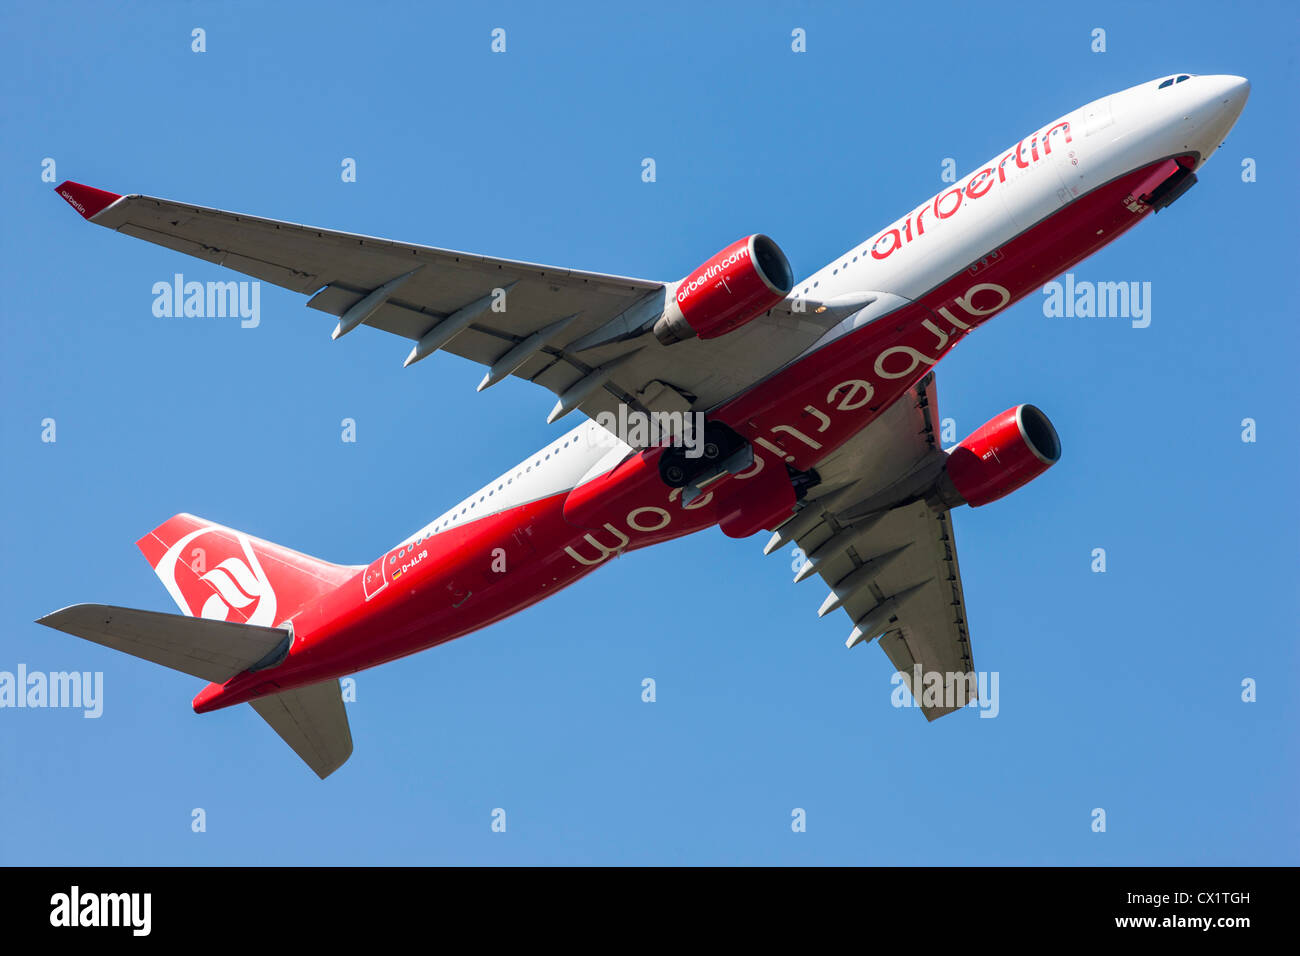 Passenger jet plane taking off from  Düsseldorf International Airport. Air Berlin, Airbus A330-223, - Stock Image